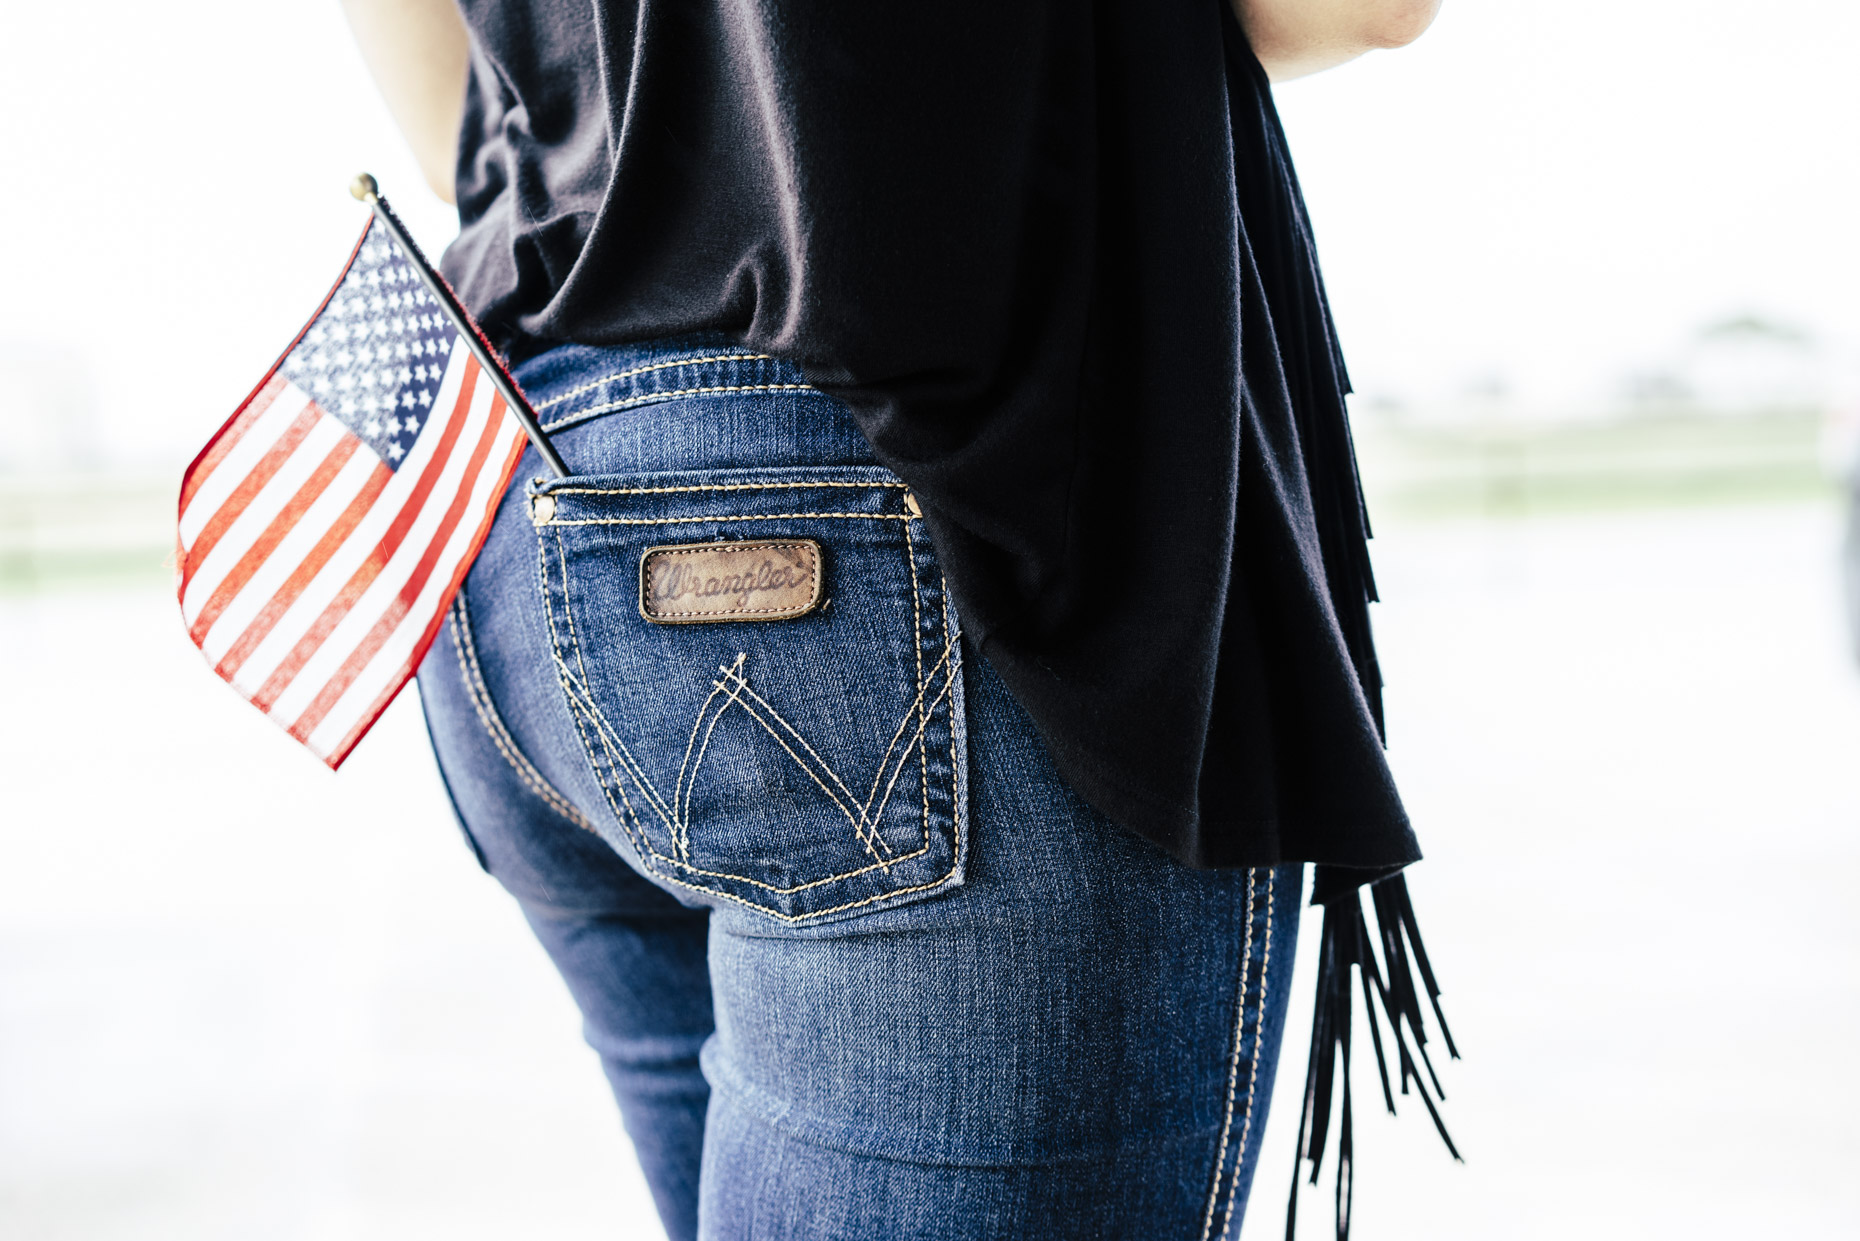 American Flag in back pocket of woman